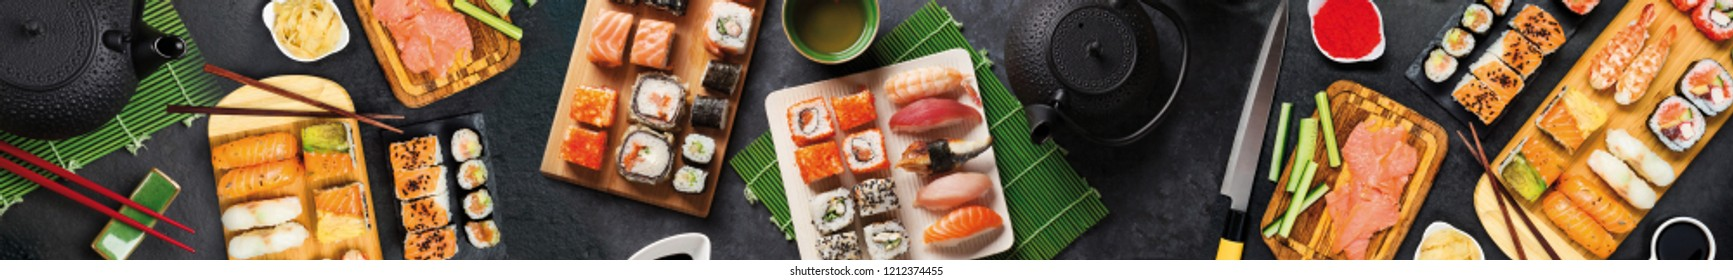 Delicious and beautiful sushi. Japanese food.